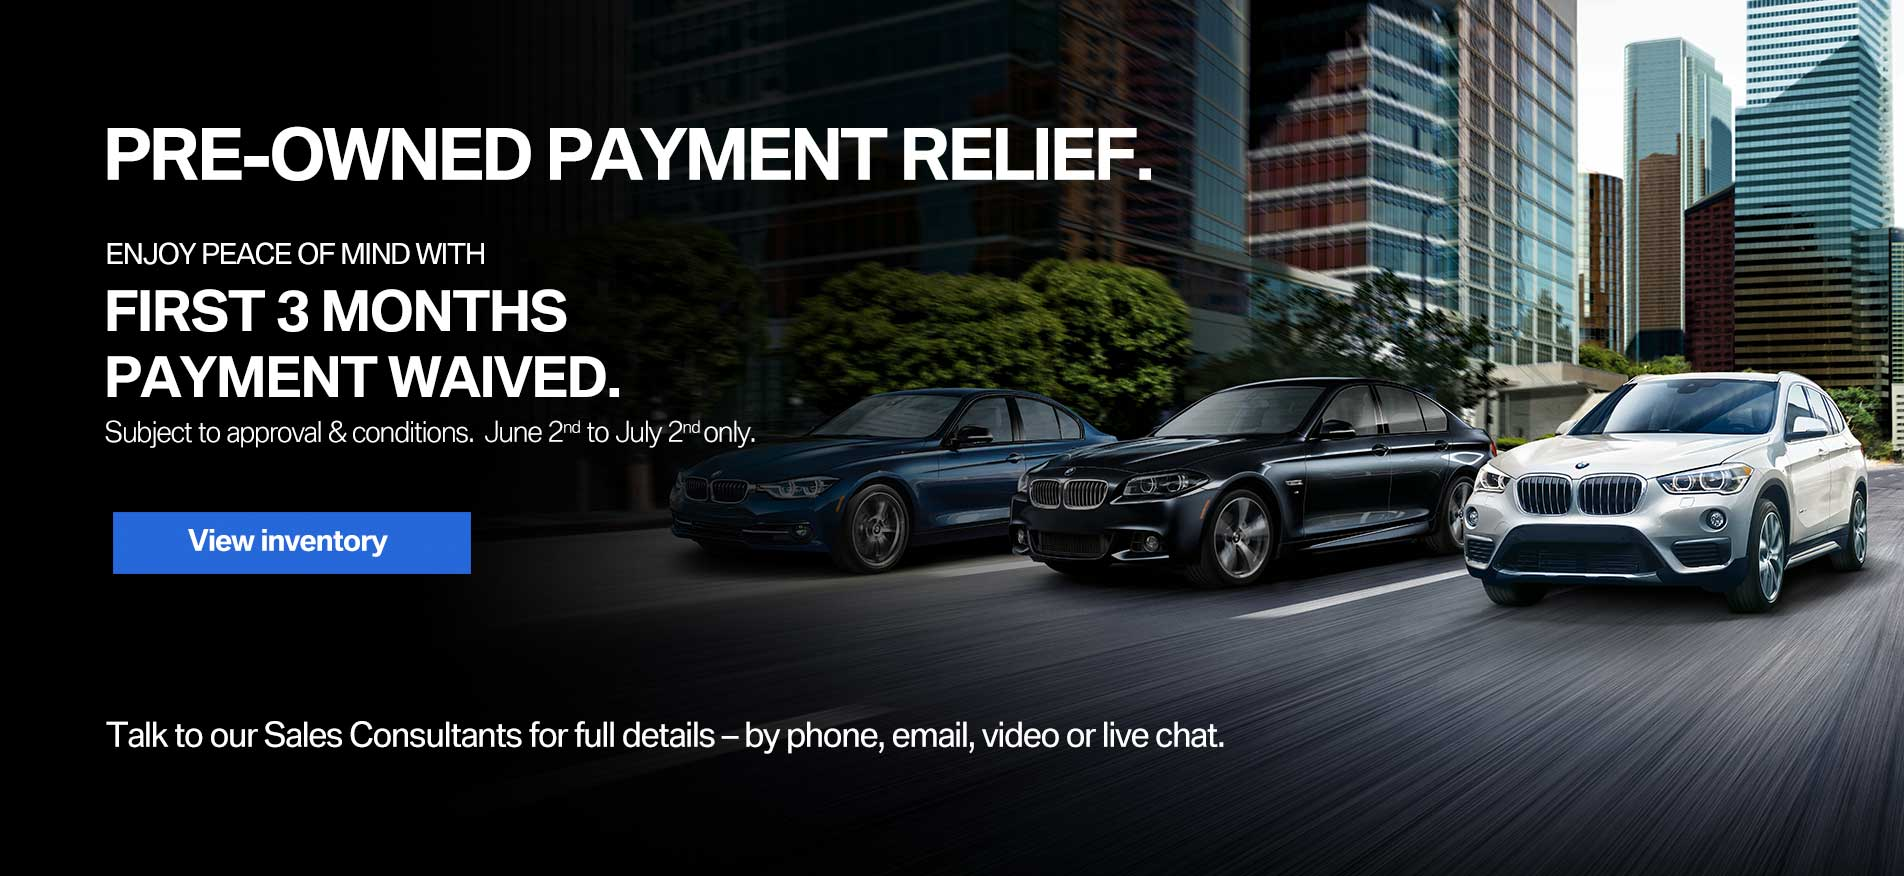 Auto West BMW Used Car Payment Relief June 2020